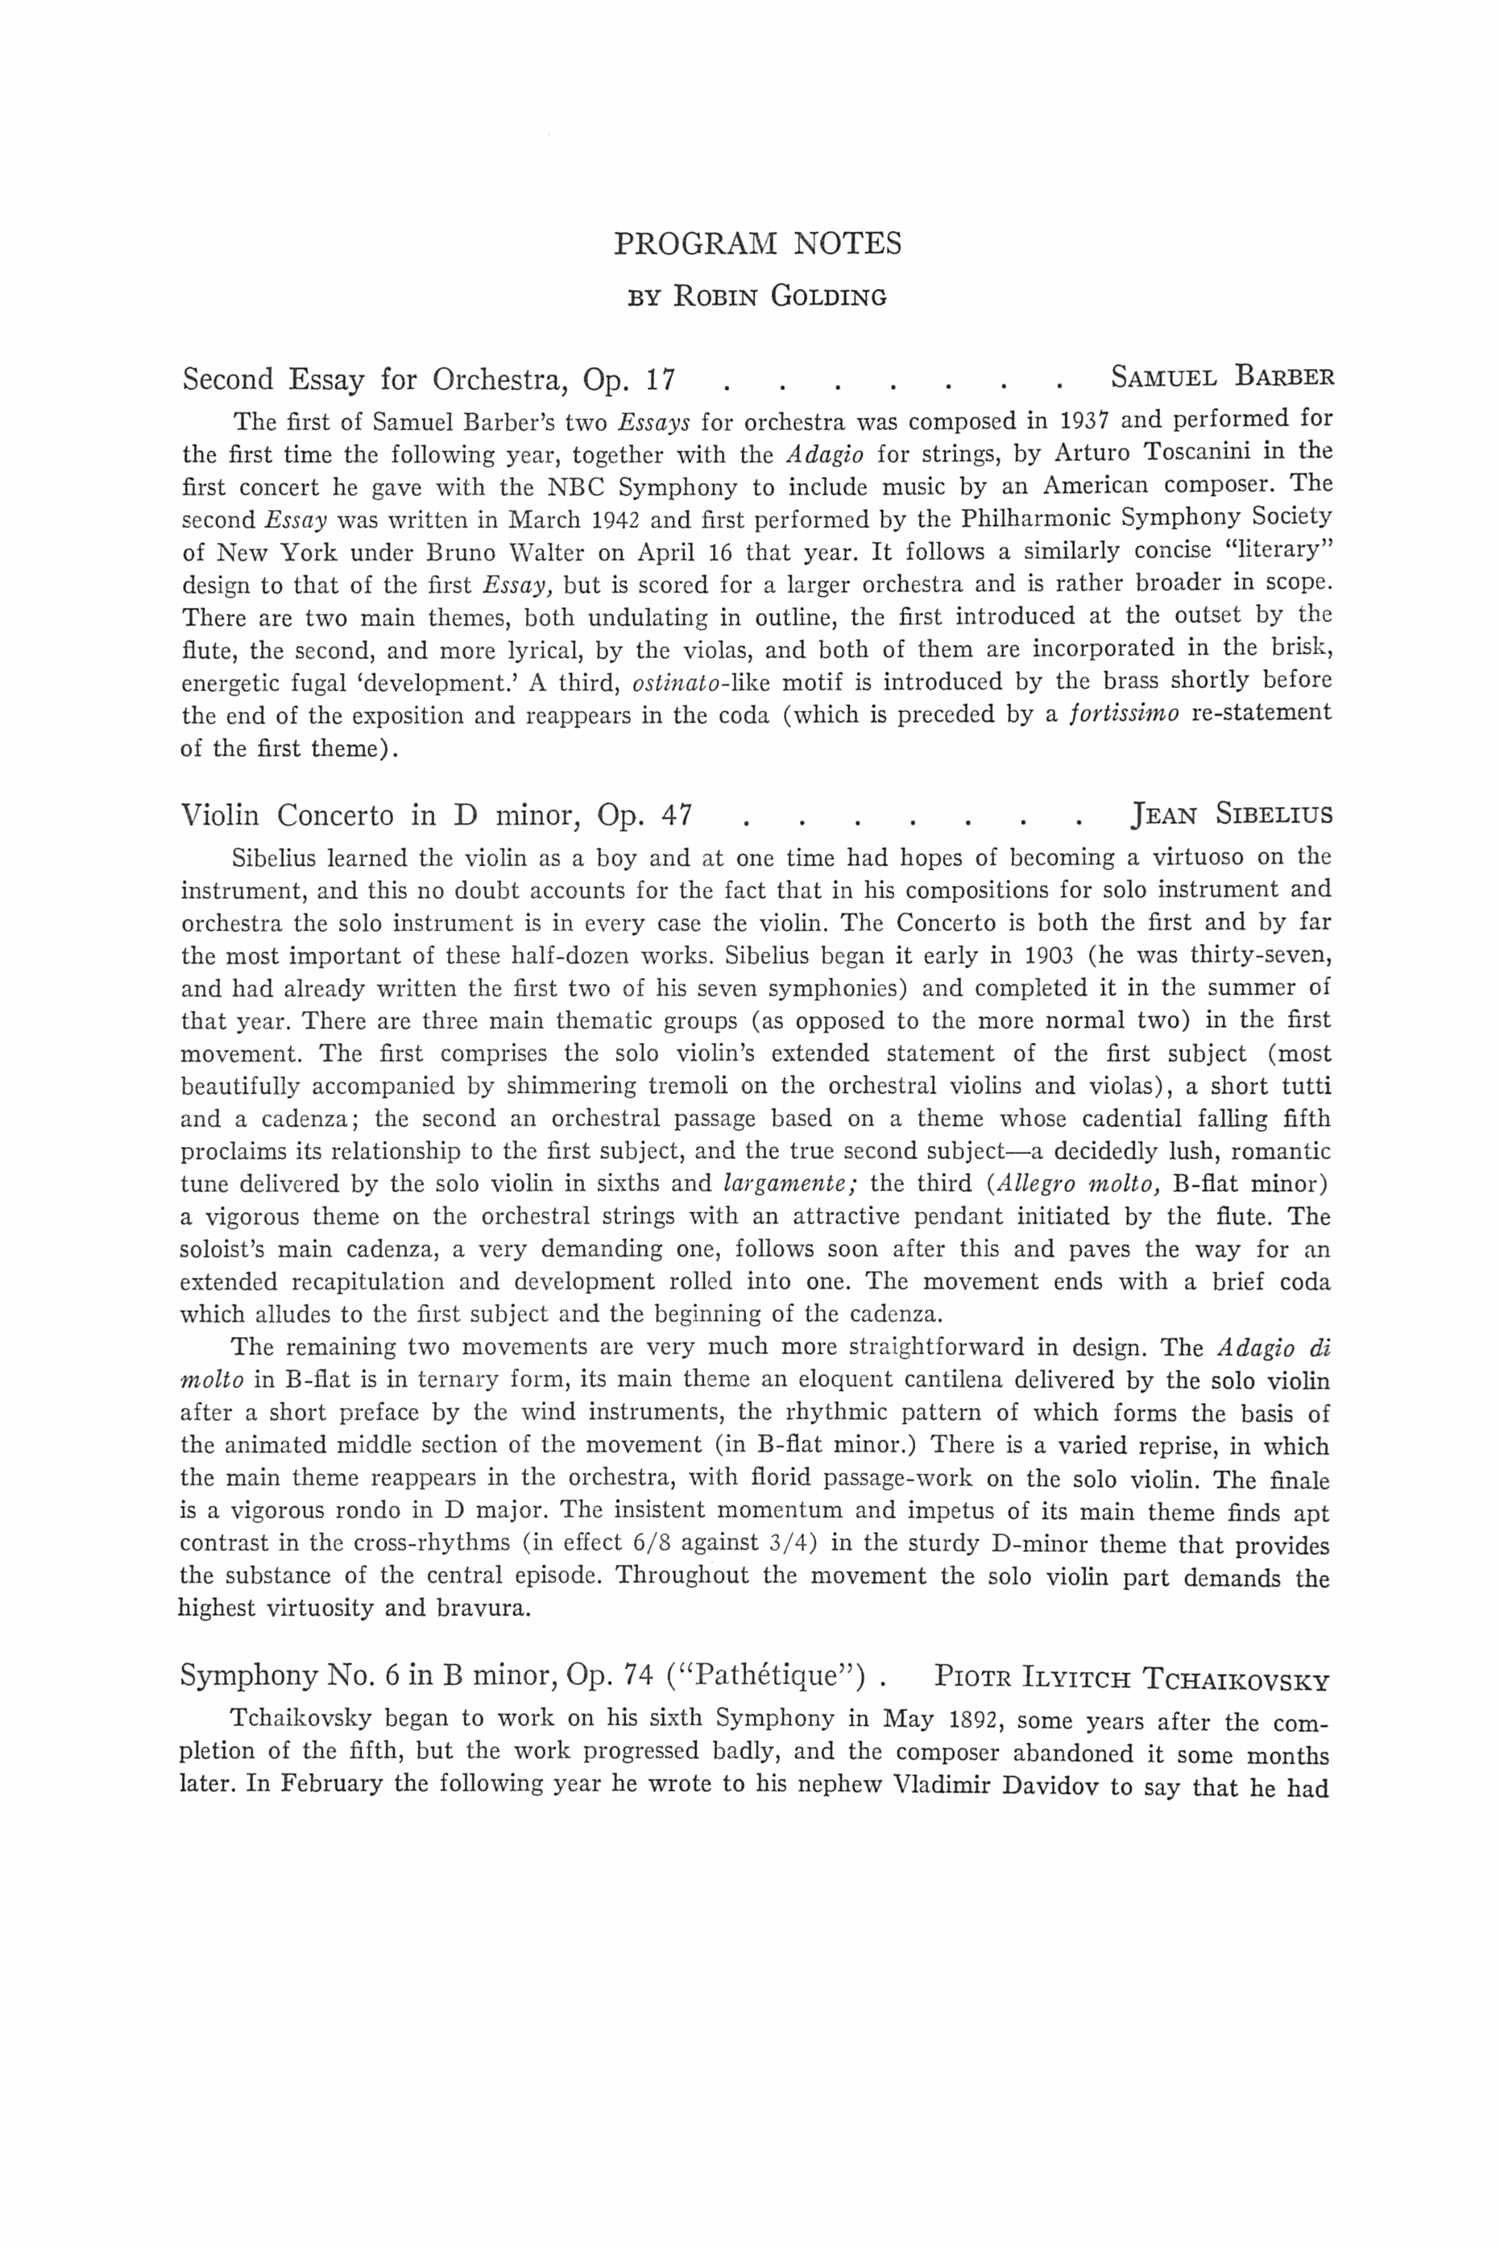 samuel barber first essay for orchestra score This piece is an arrangement for string orchestra of the as well as samuel barber's performance score are a part samuel barber at the library of congress.